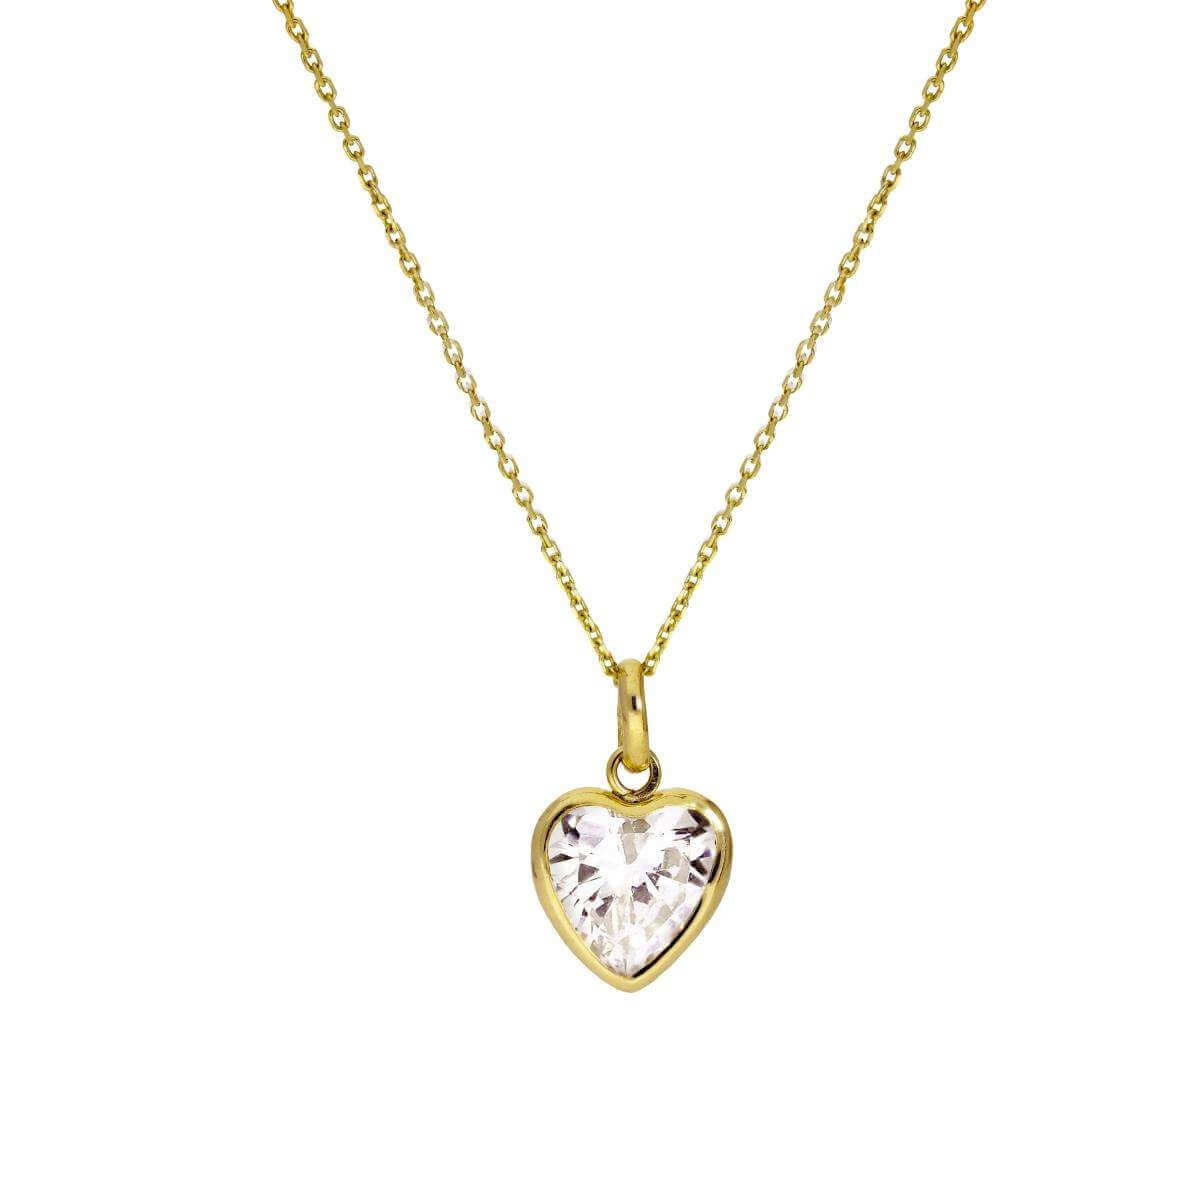 9ct Gold & Clear CZ Crystal Heart Pendant Necklace 16 - 20 Inches